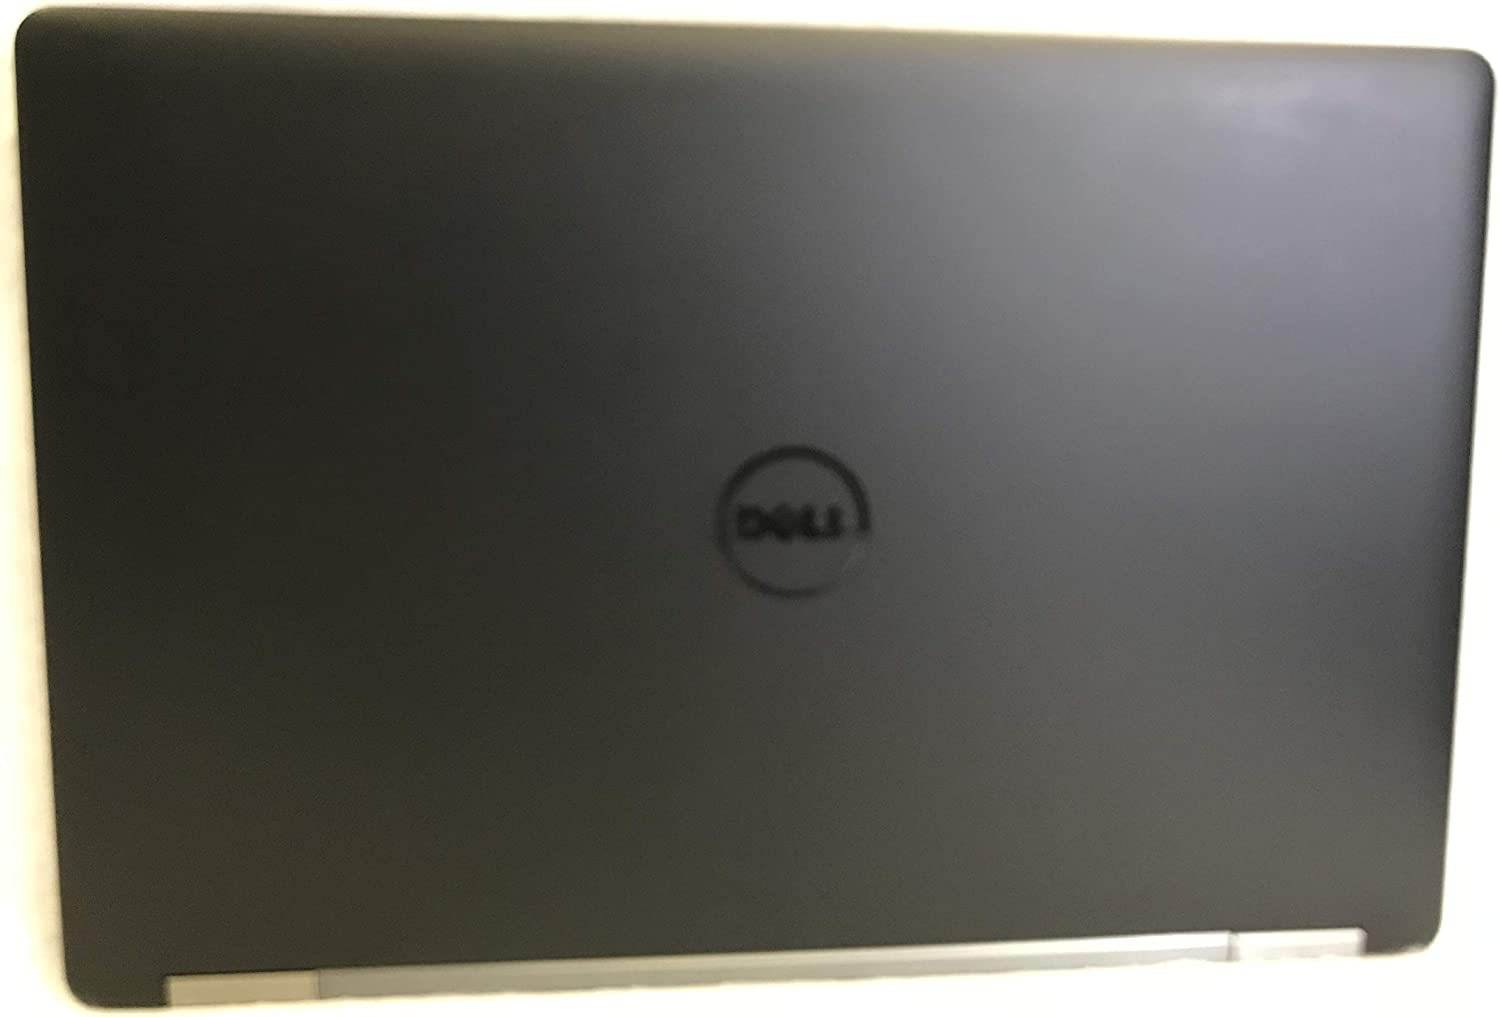 Dell Latitude E5570 Business Laptop i5-6300U 8GB DDR4 500GB Windows 10 Pro